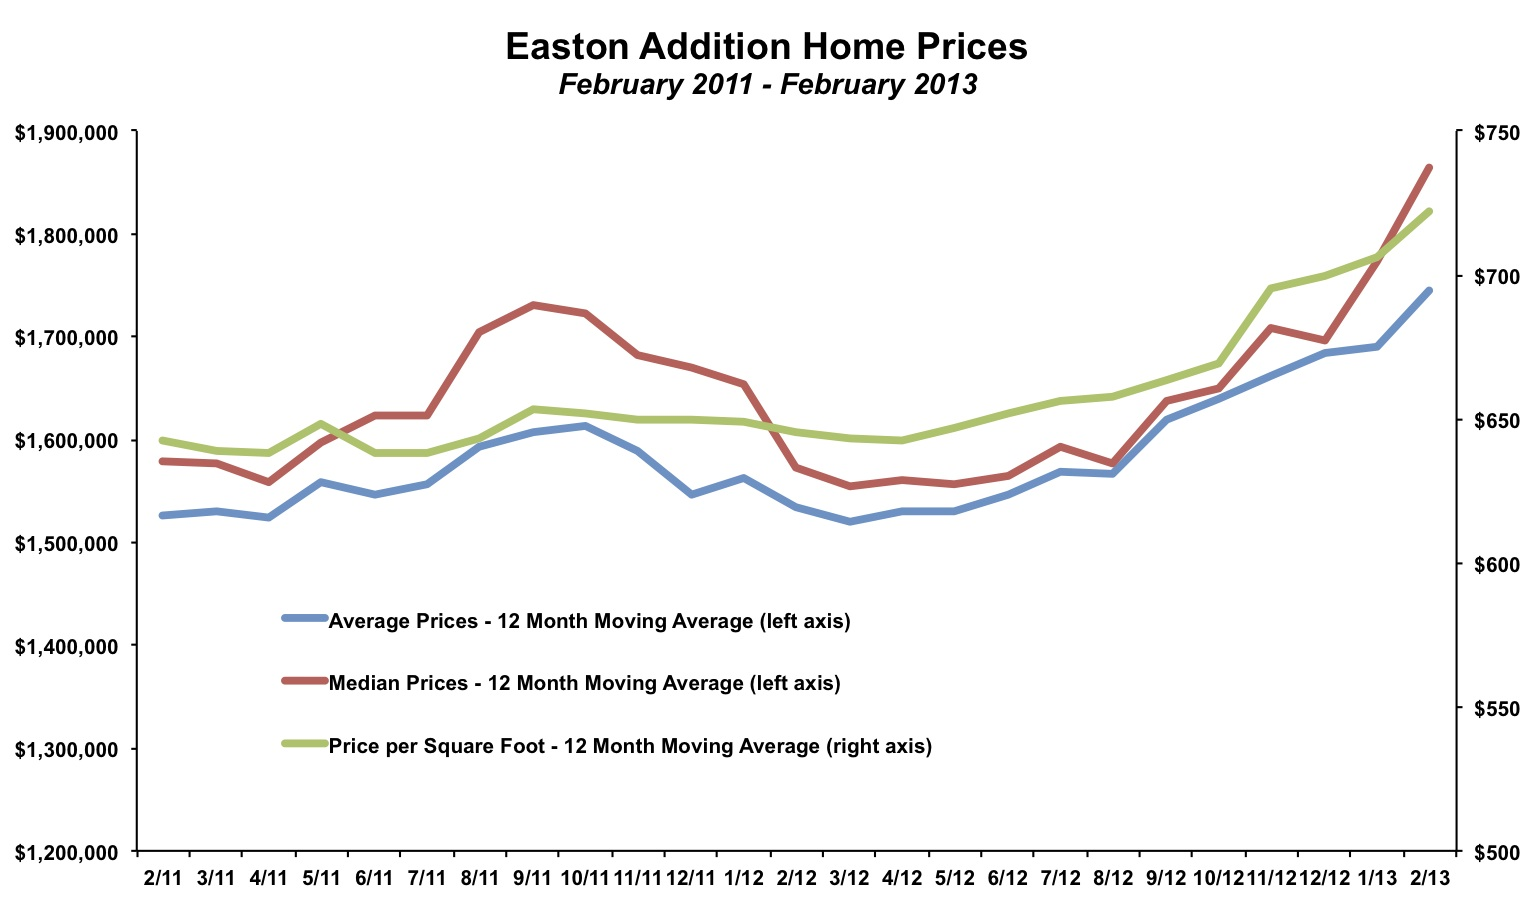 Easton Addition Home Prices February 2013